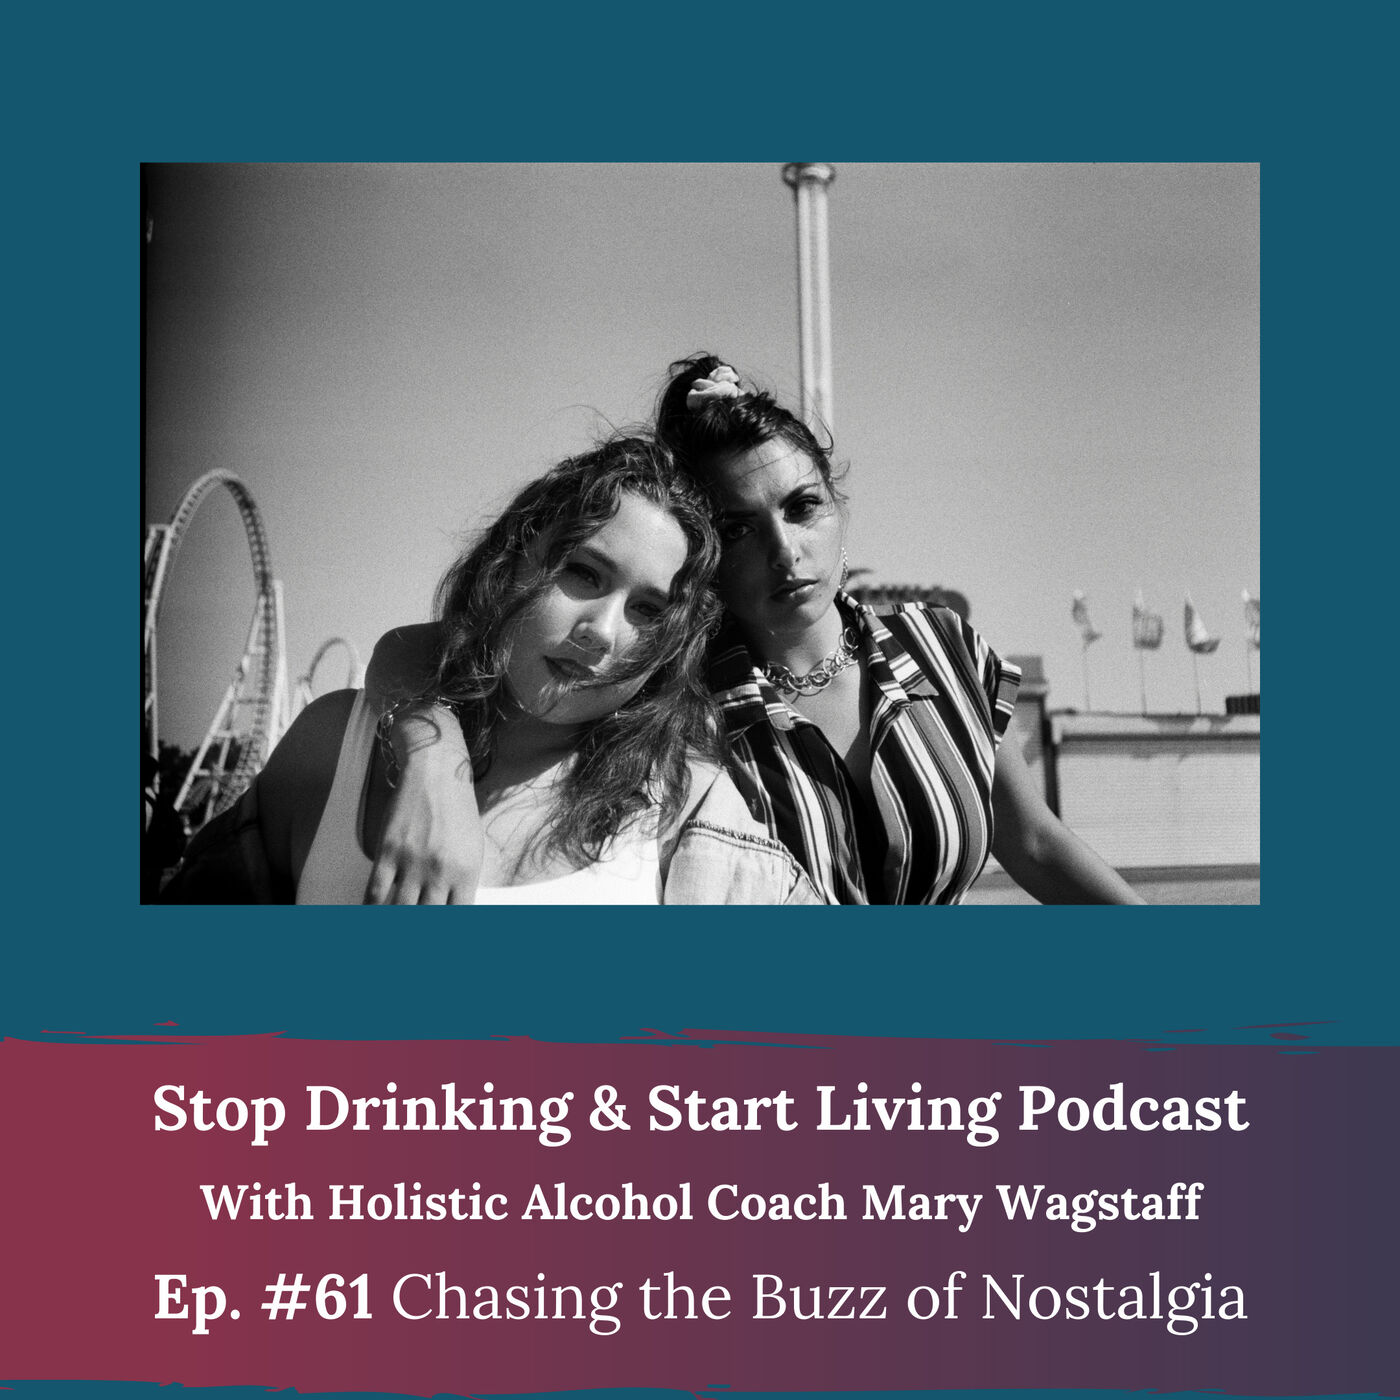 Ep. #61 Chasing the Buzz of Nostalgia